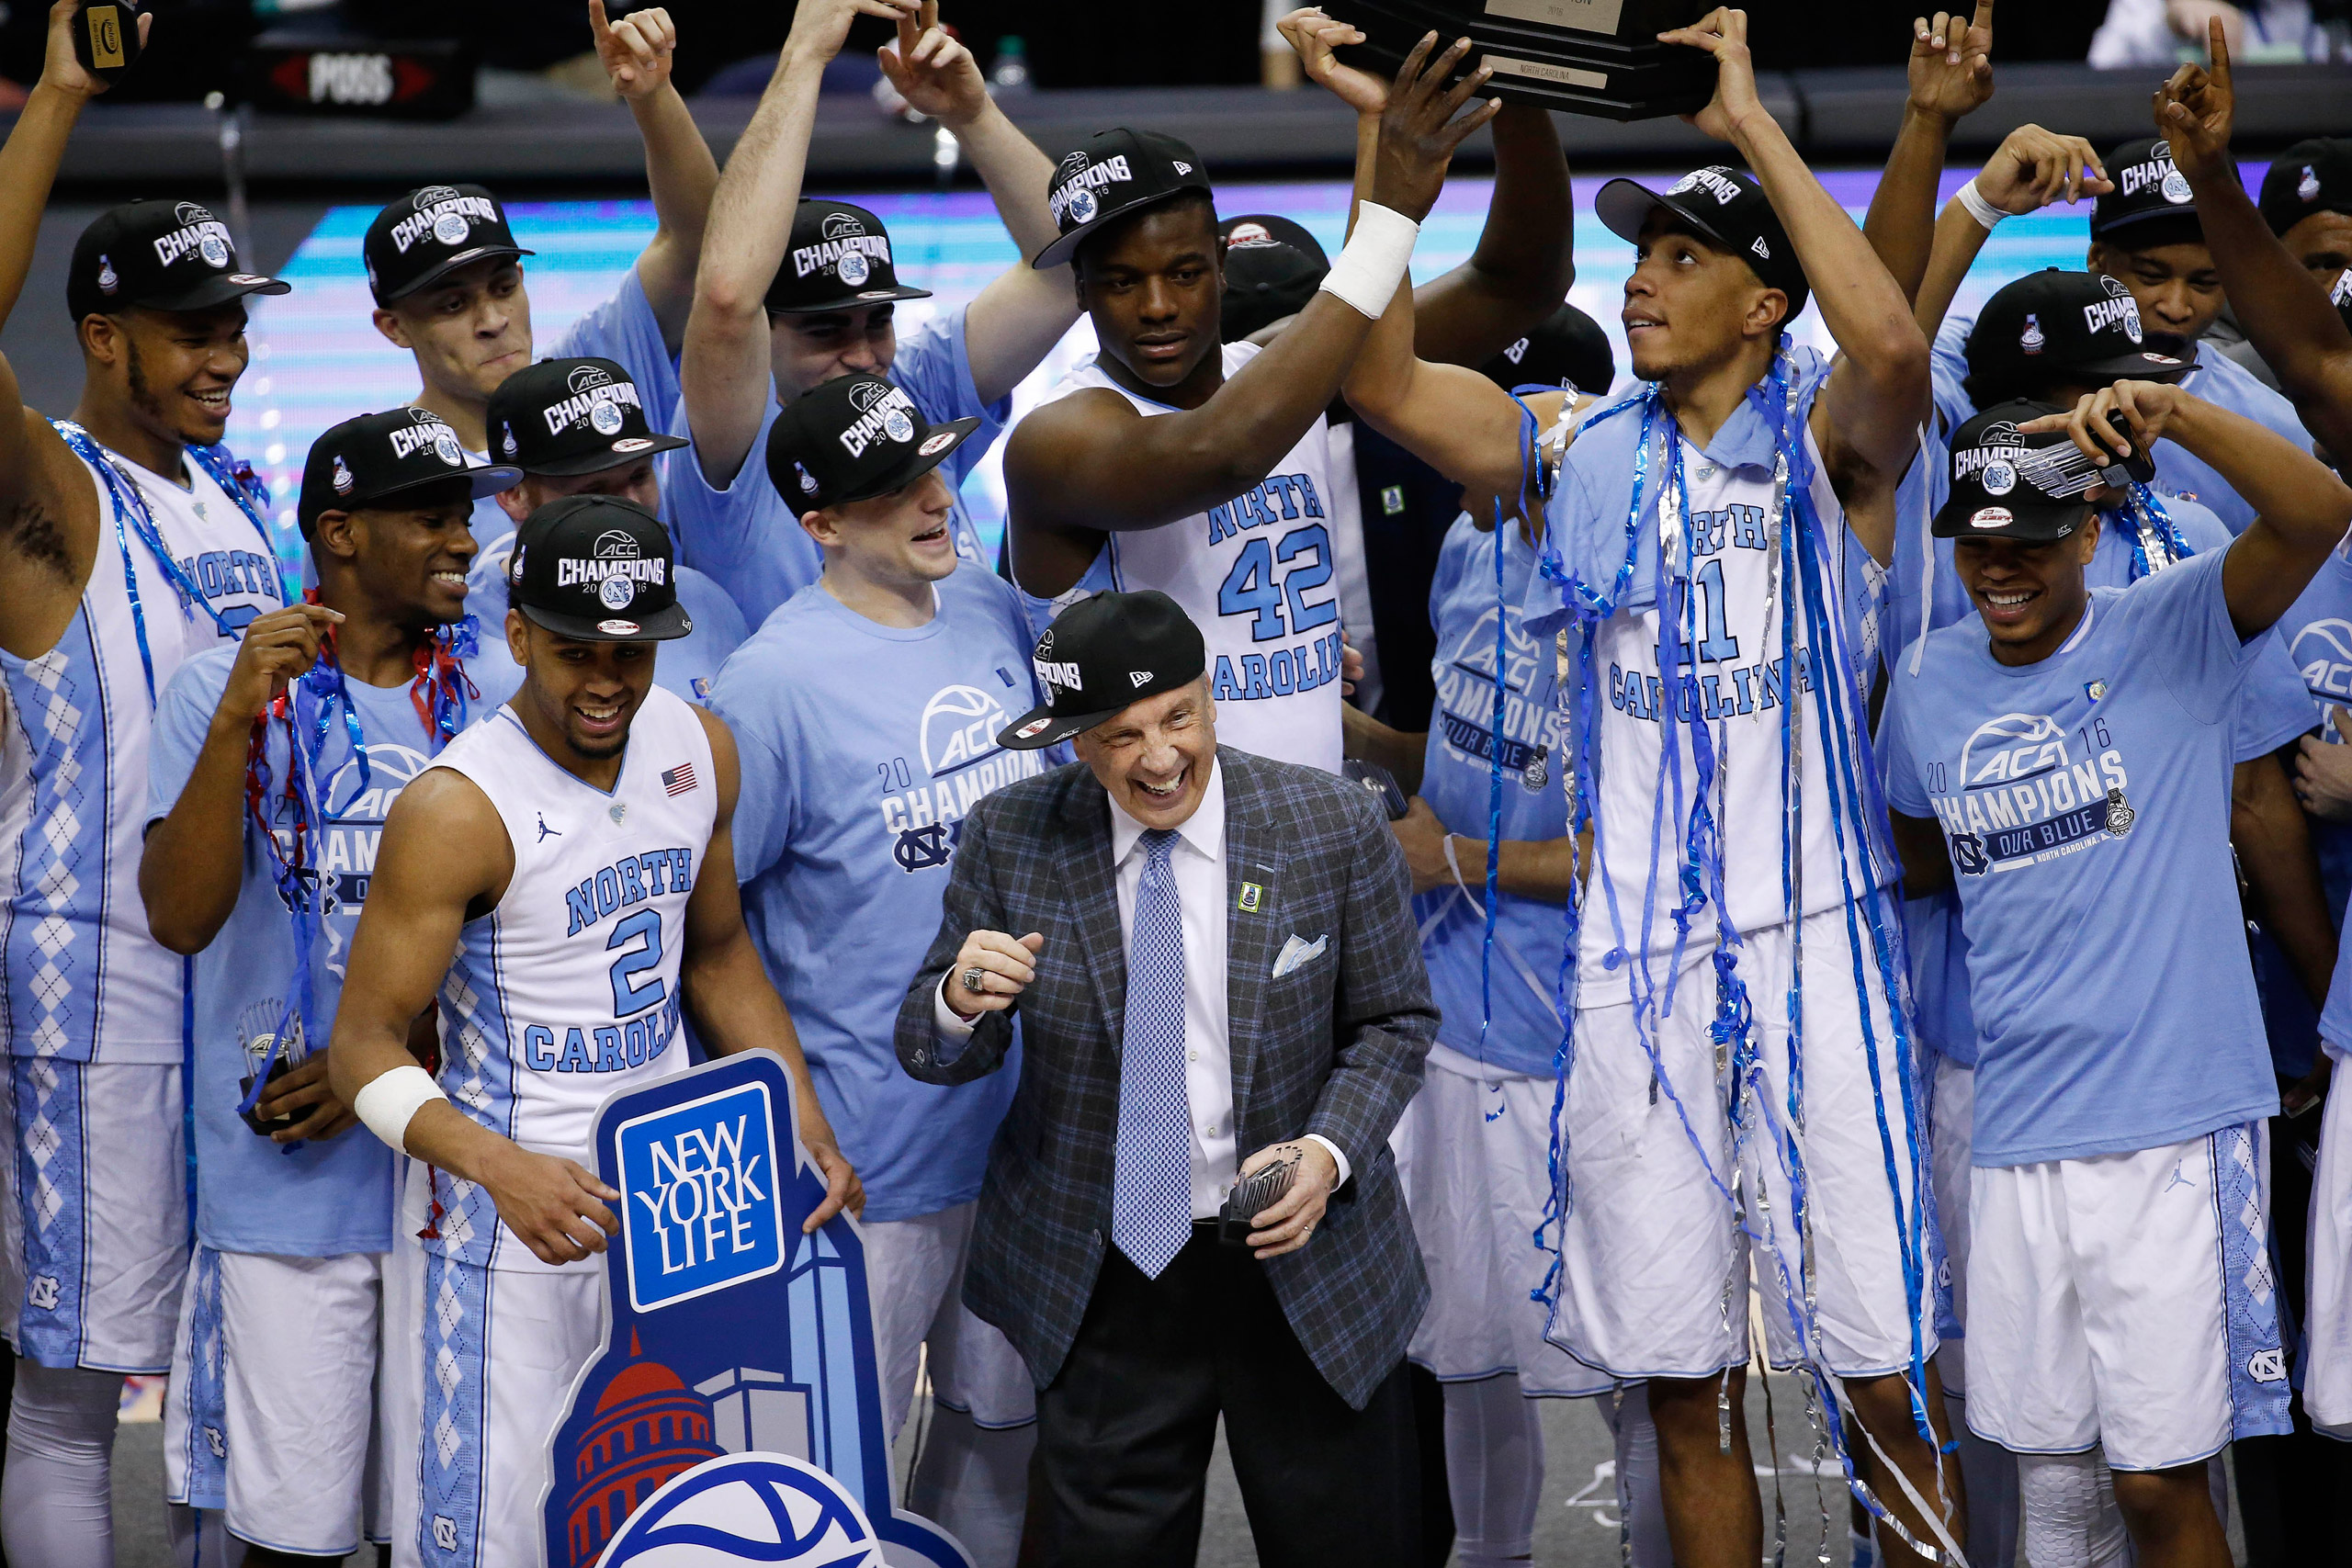 North Carolina head coach Roy Williams and players celebrate after an NCAA college basketball game in the championship of the Atlantic Coast Conference tournament against Virginia in Washington on  March 12, 2016.